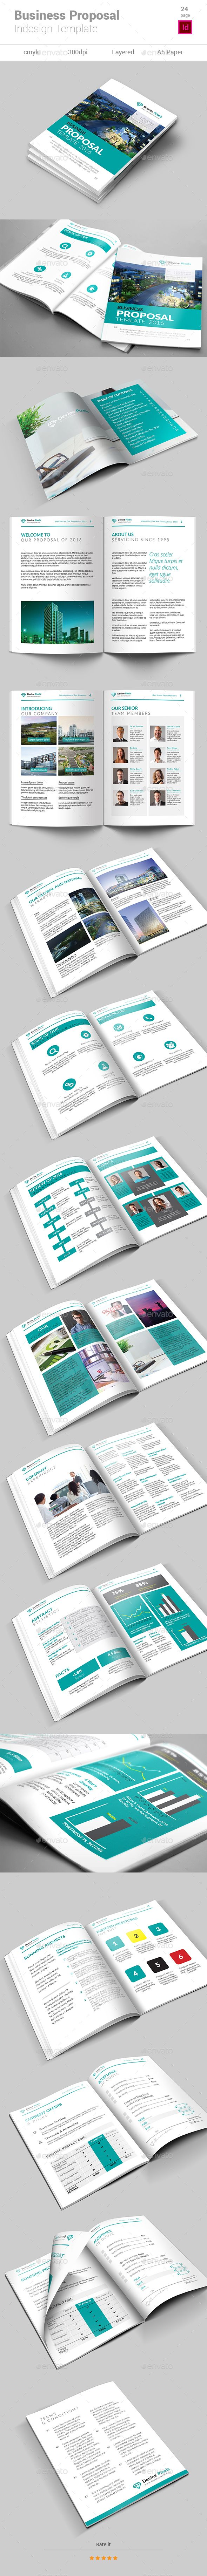 Business proposal indesign template business proposal indesign business proposal template indesign indd download here httpsgraphicriveritembusiness proposal indesign template 17377721refksioks accmission Image collections